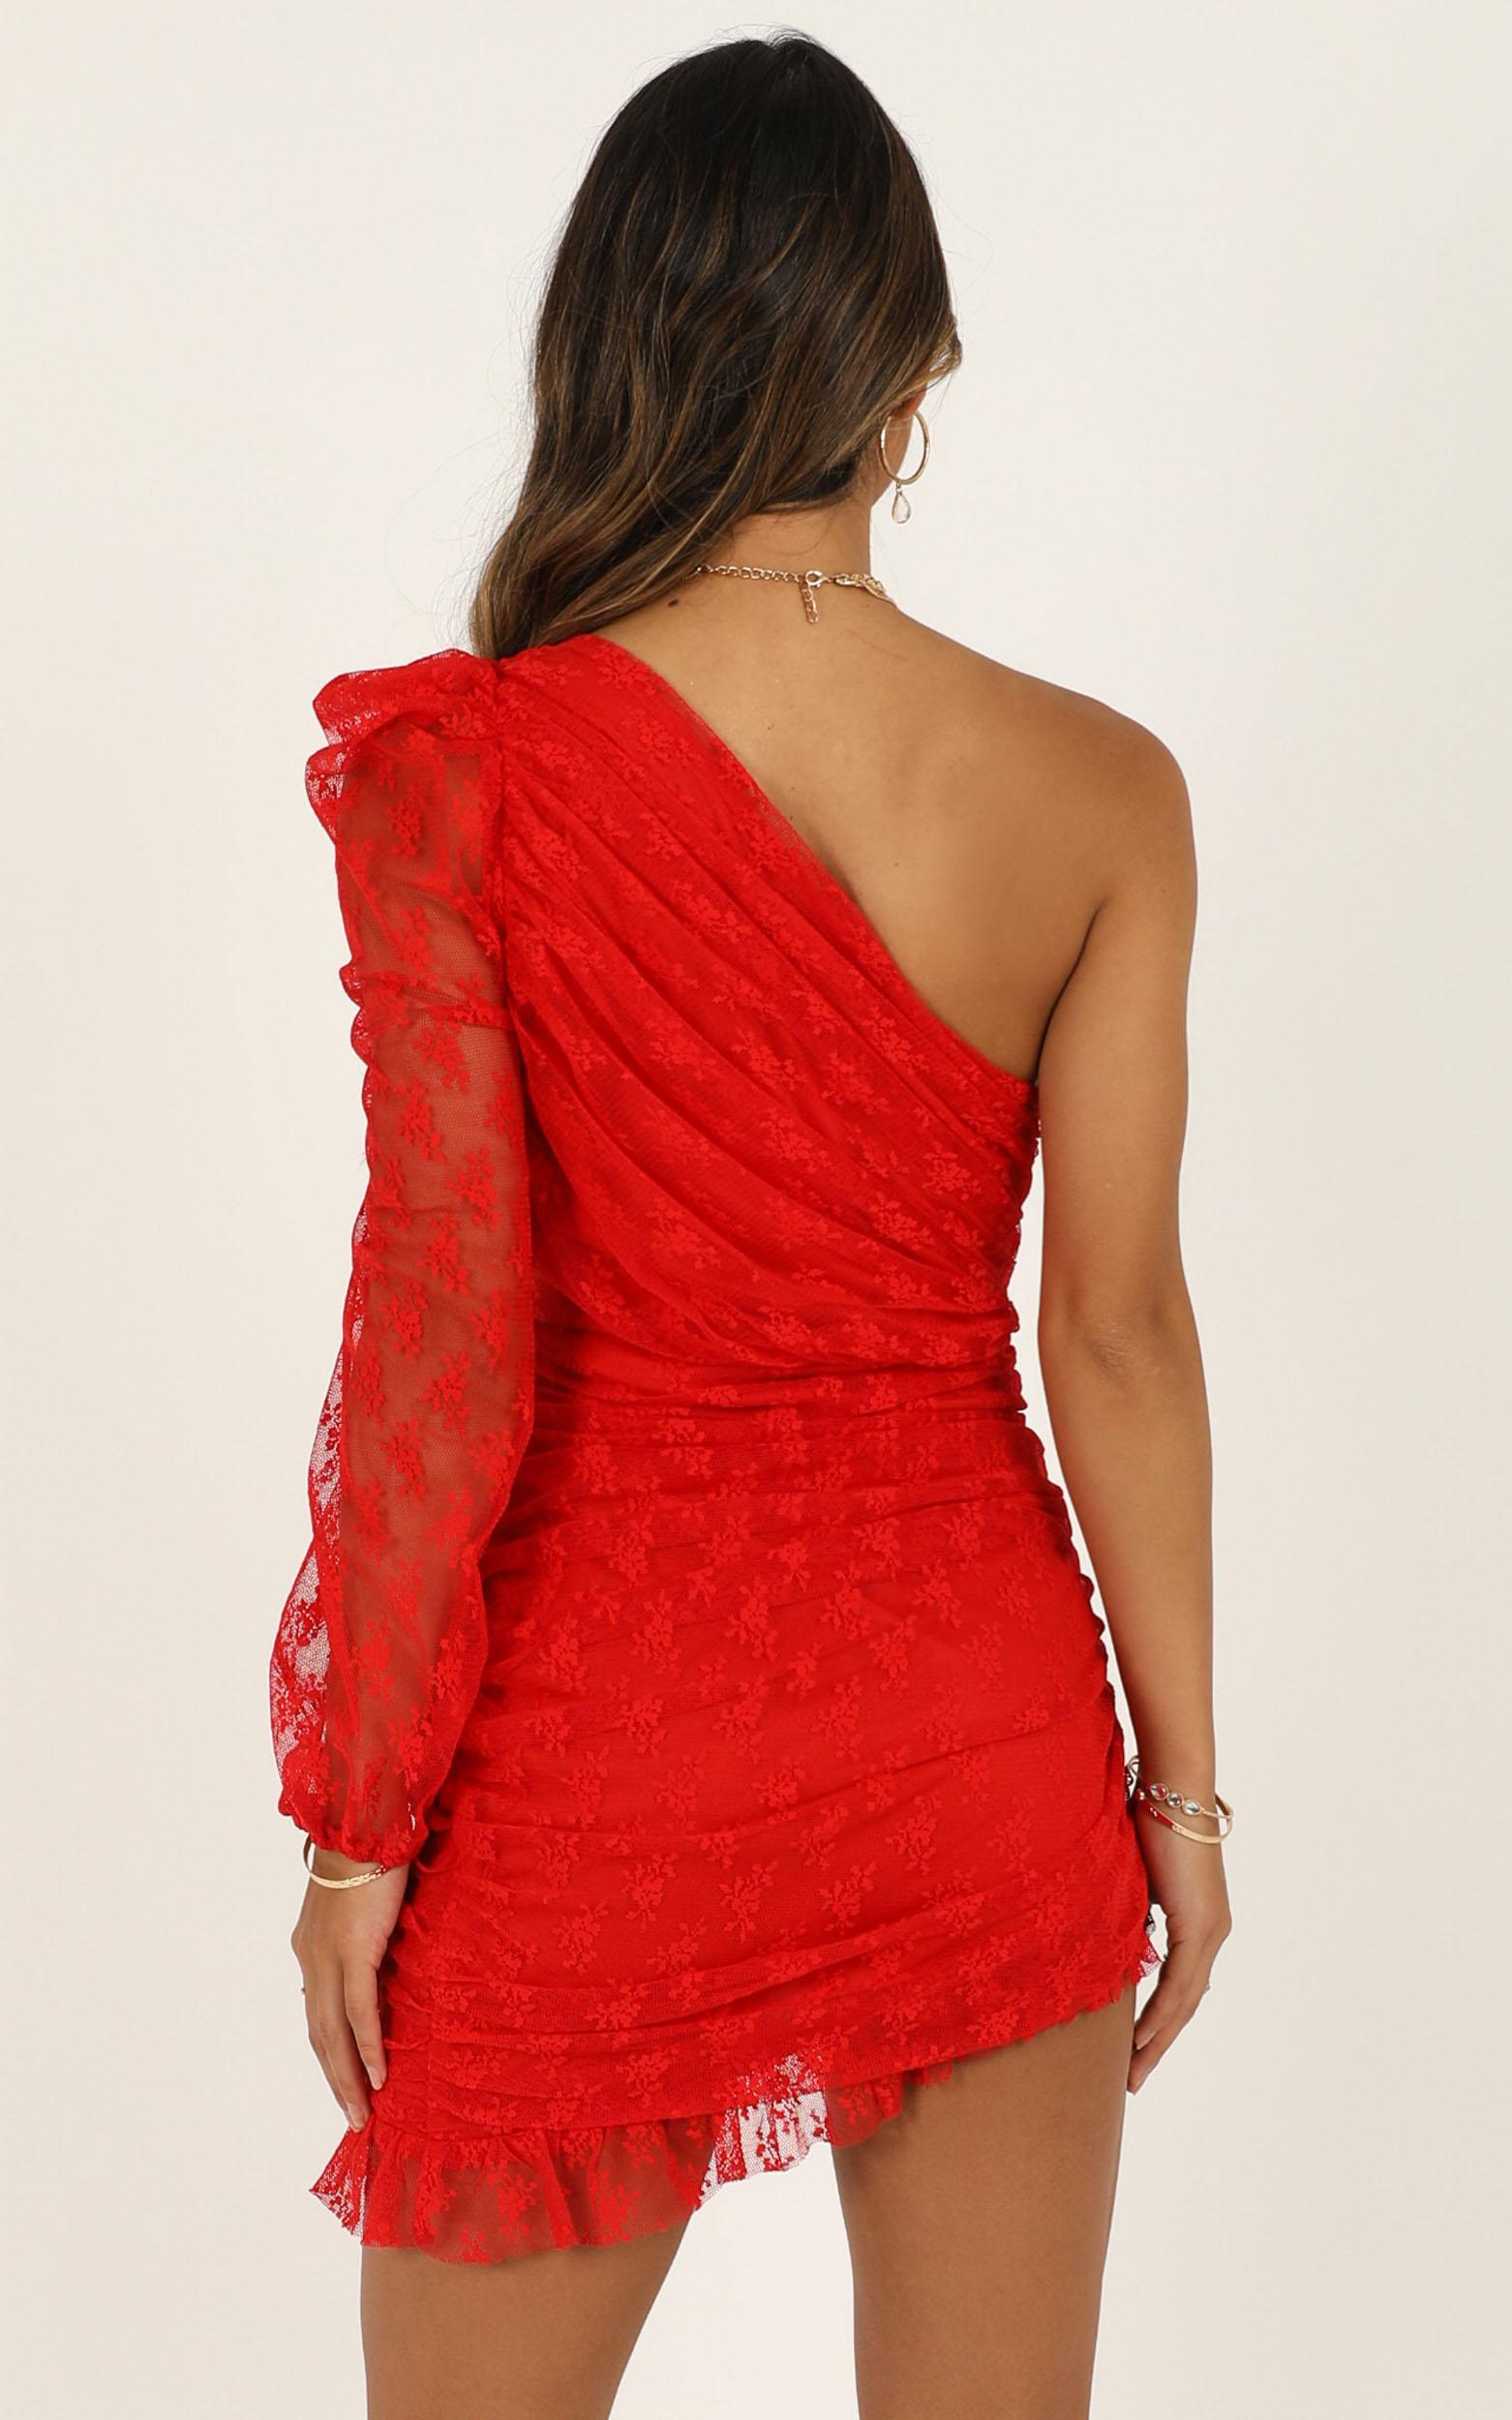 Its A Game dress in red lace - 16 (XXL), Red, hi-res image number null